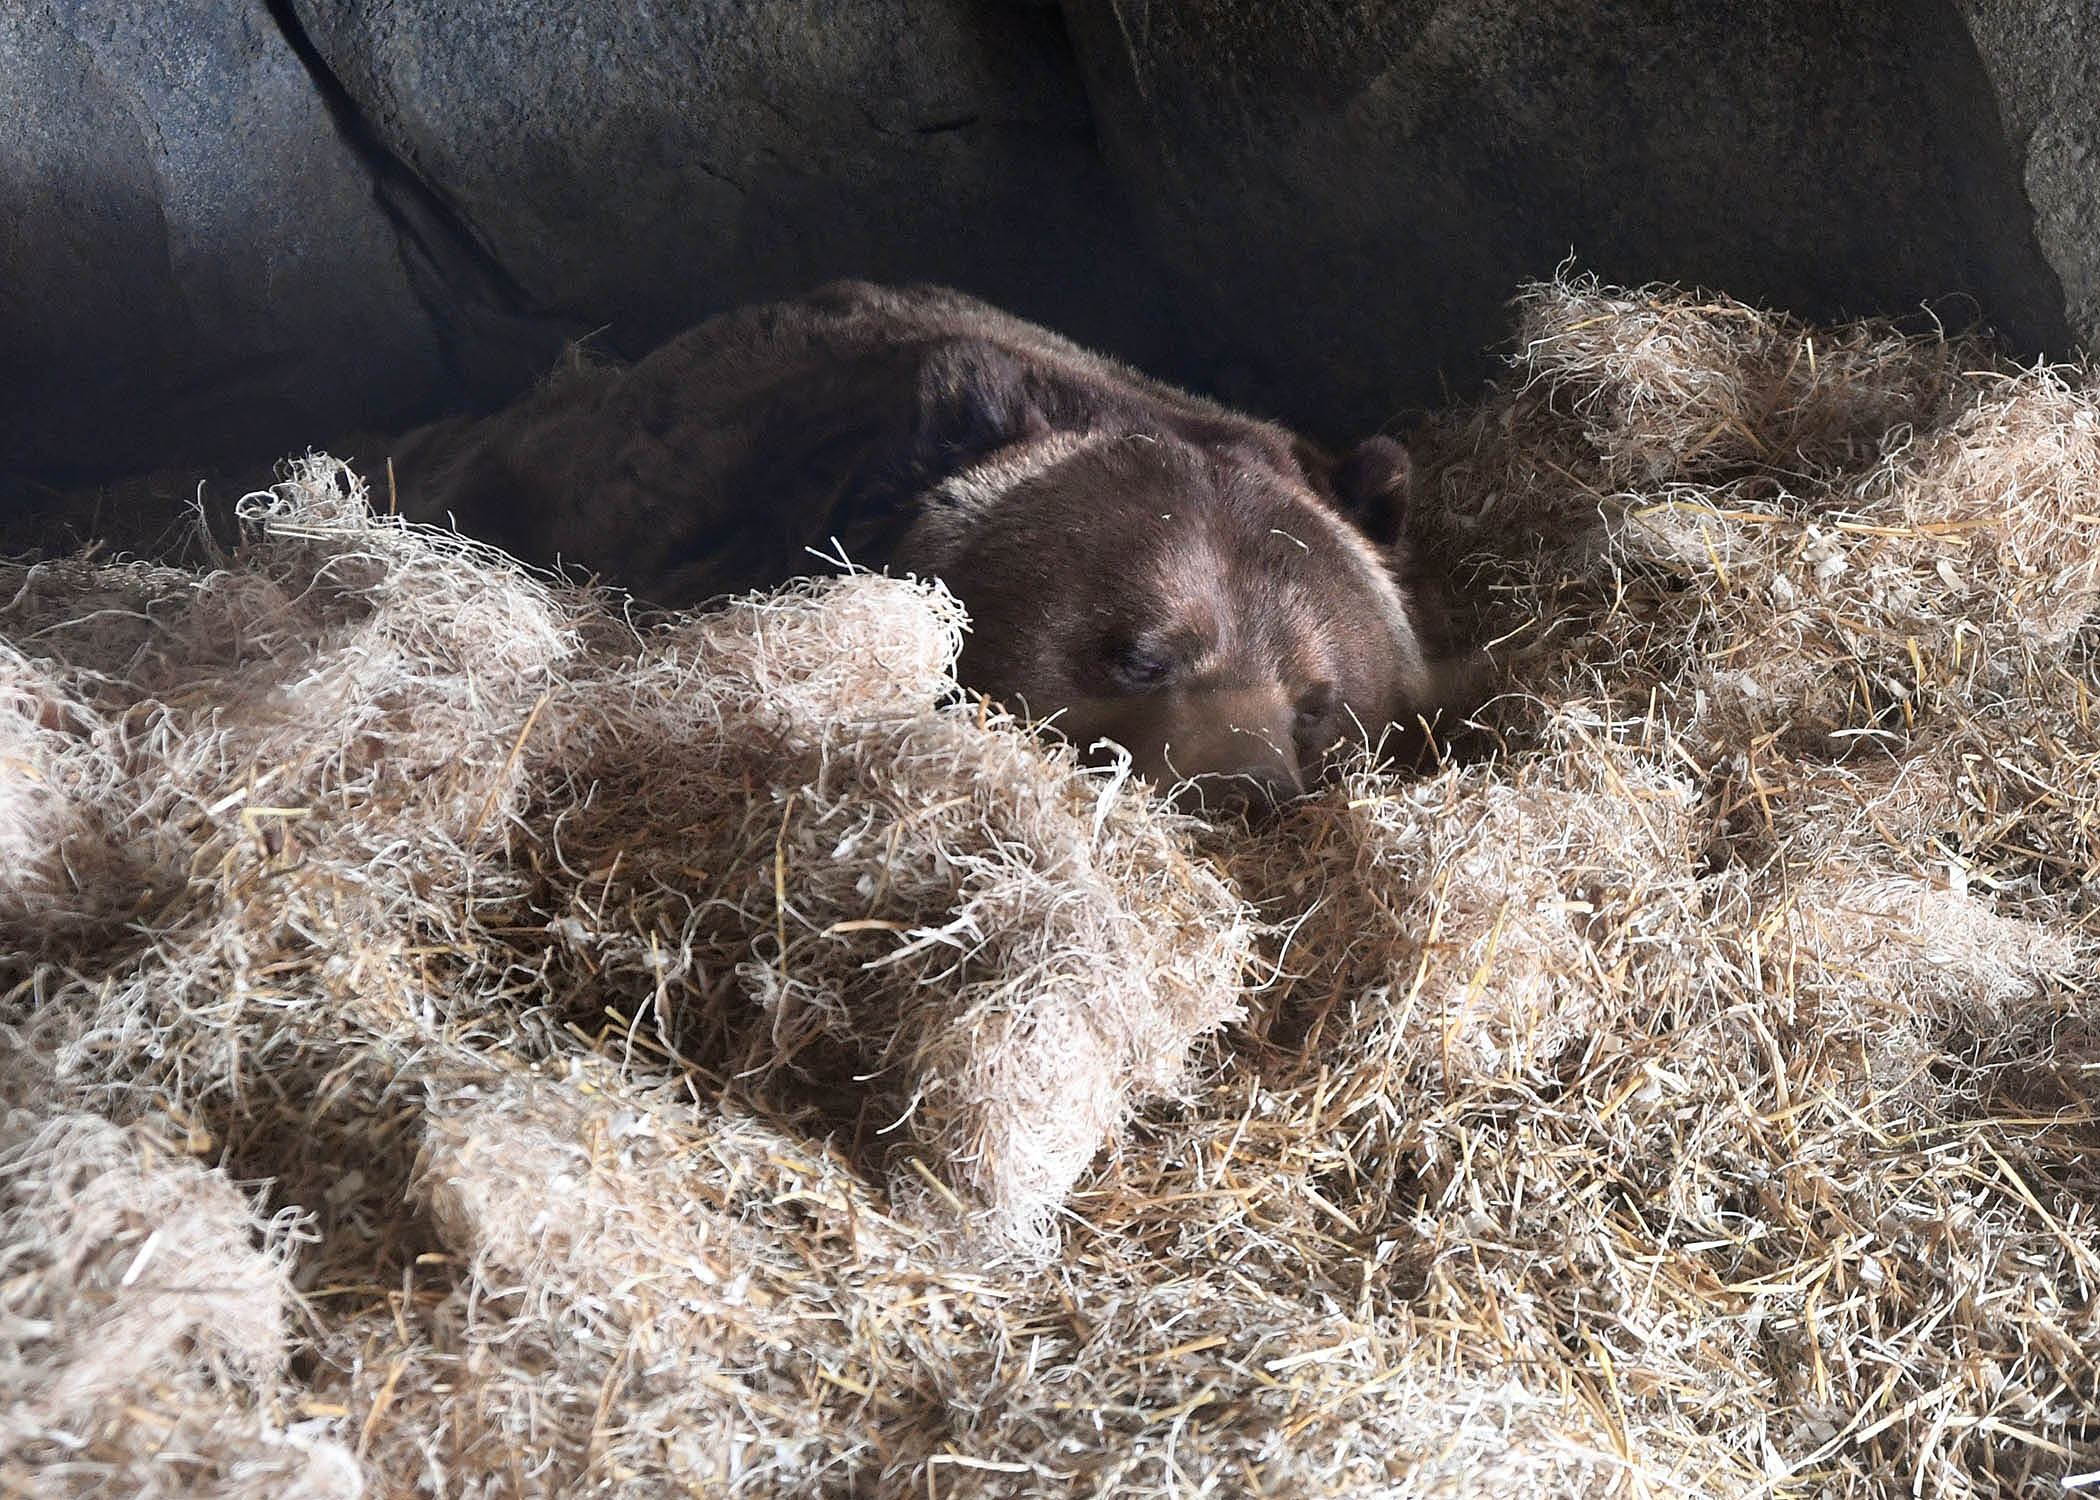 Brookfield Zoo's brown bear sleeping through the winter months Photo courtesy of Brookfield Zoo